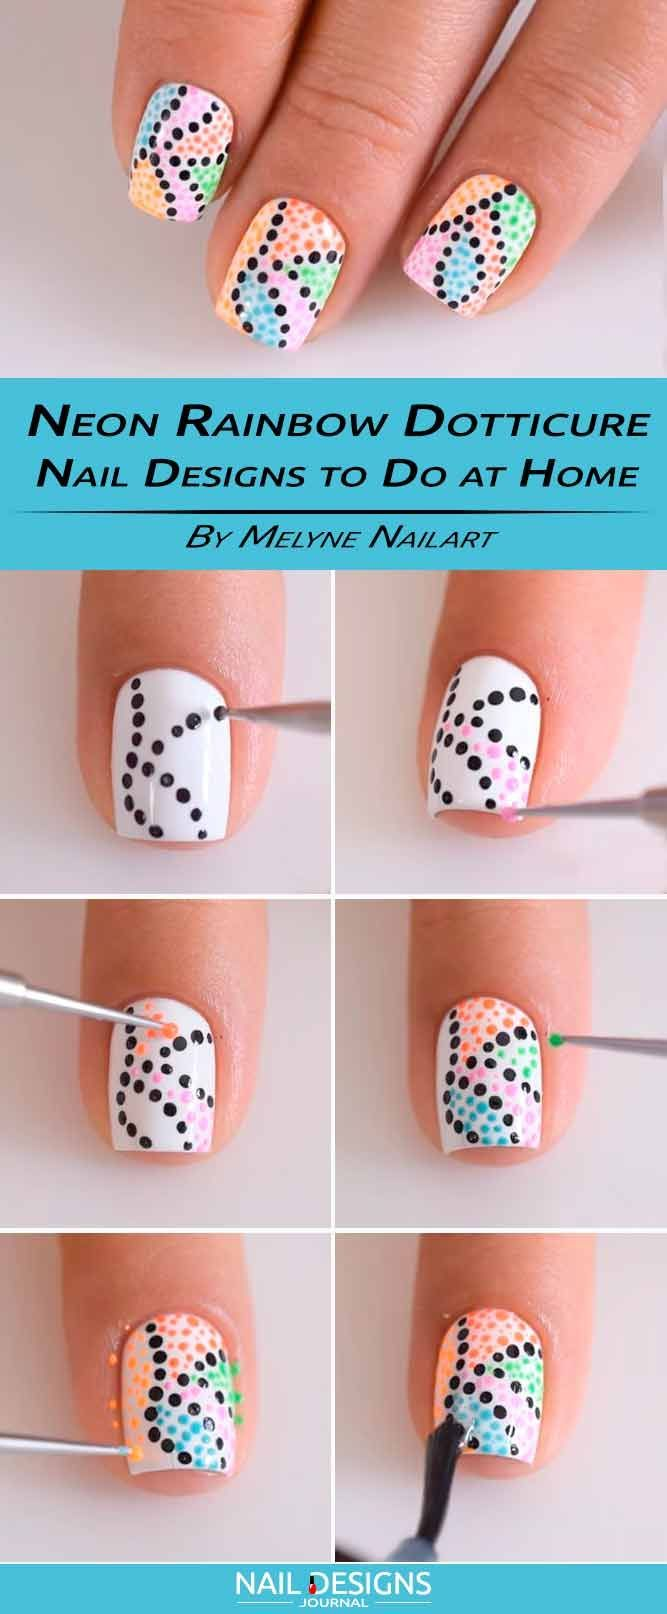 12 Step By Step Tutorials How To Do Nail Designs At Home